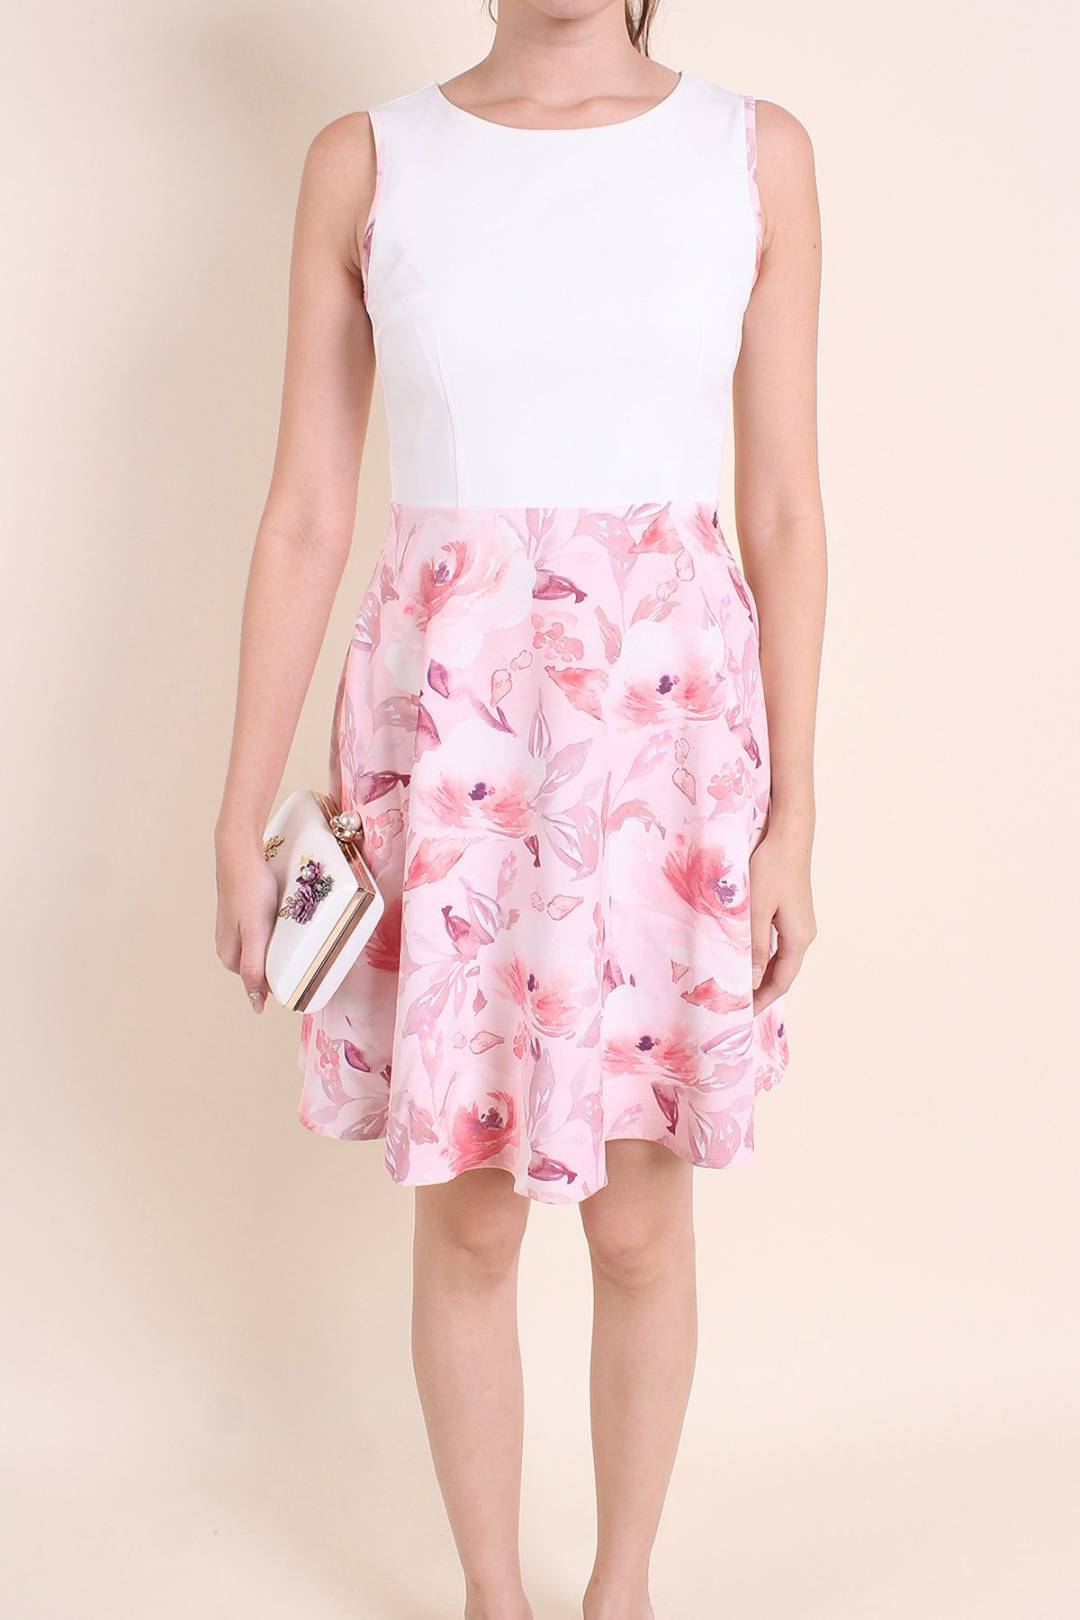 MADEBYNM BAI HE PIPED WATERFLORAL FIT-N-FLARE DRESS IN WHITE/ROUGE [XS/S/M/L/XL]